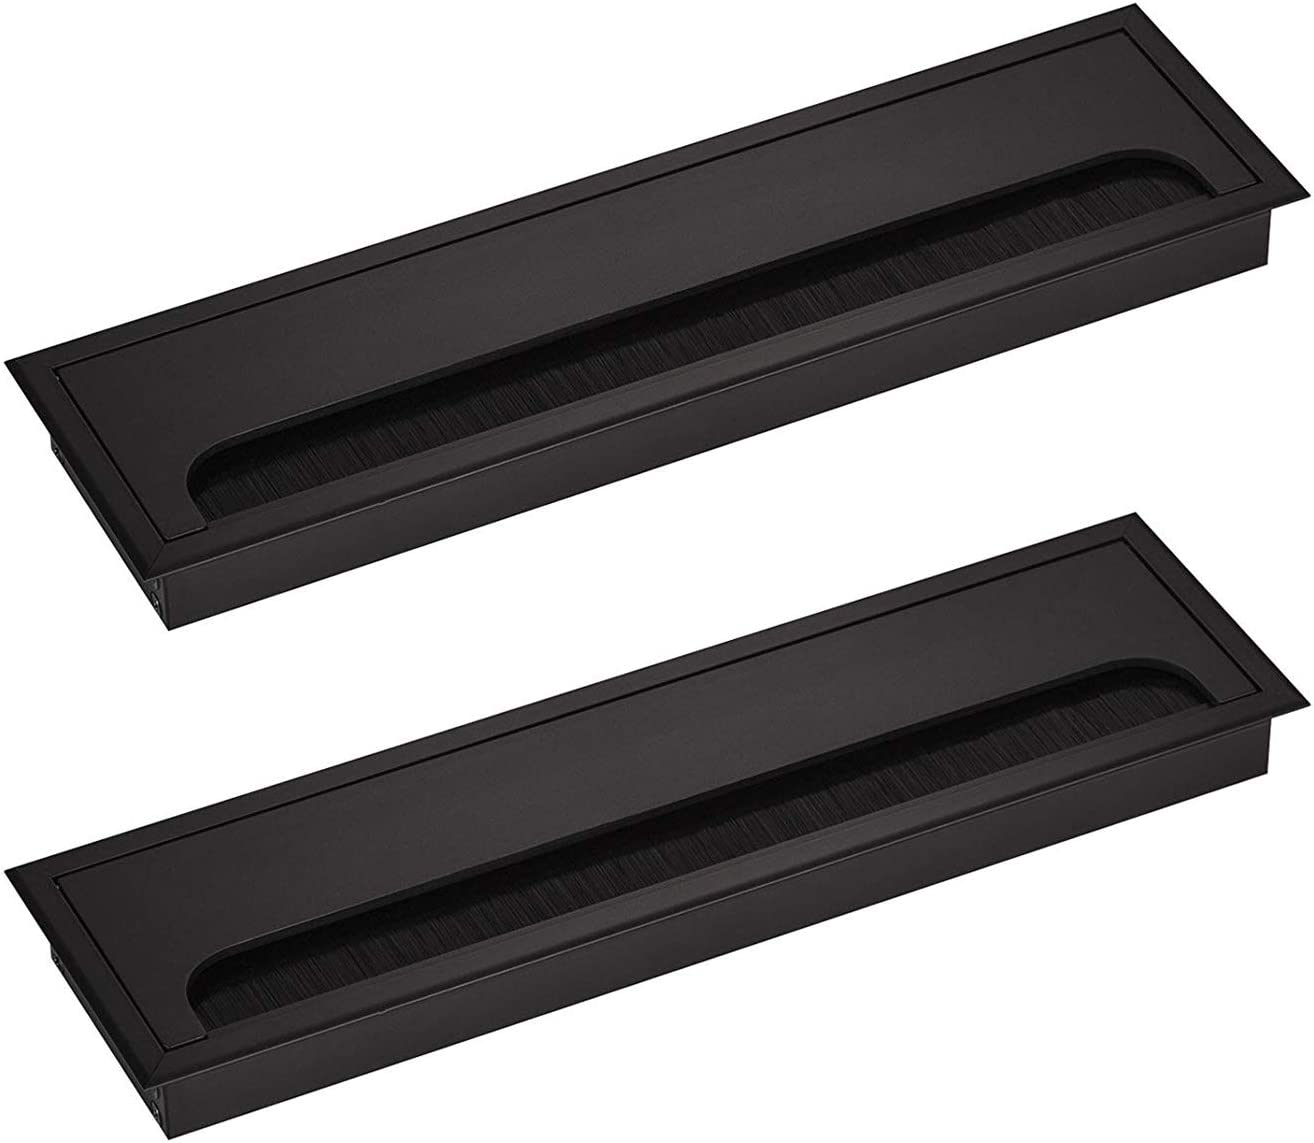 10 x 48mm Ventilation Trim for Desk//Table//Cable Tidy Hole Plug